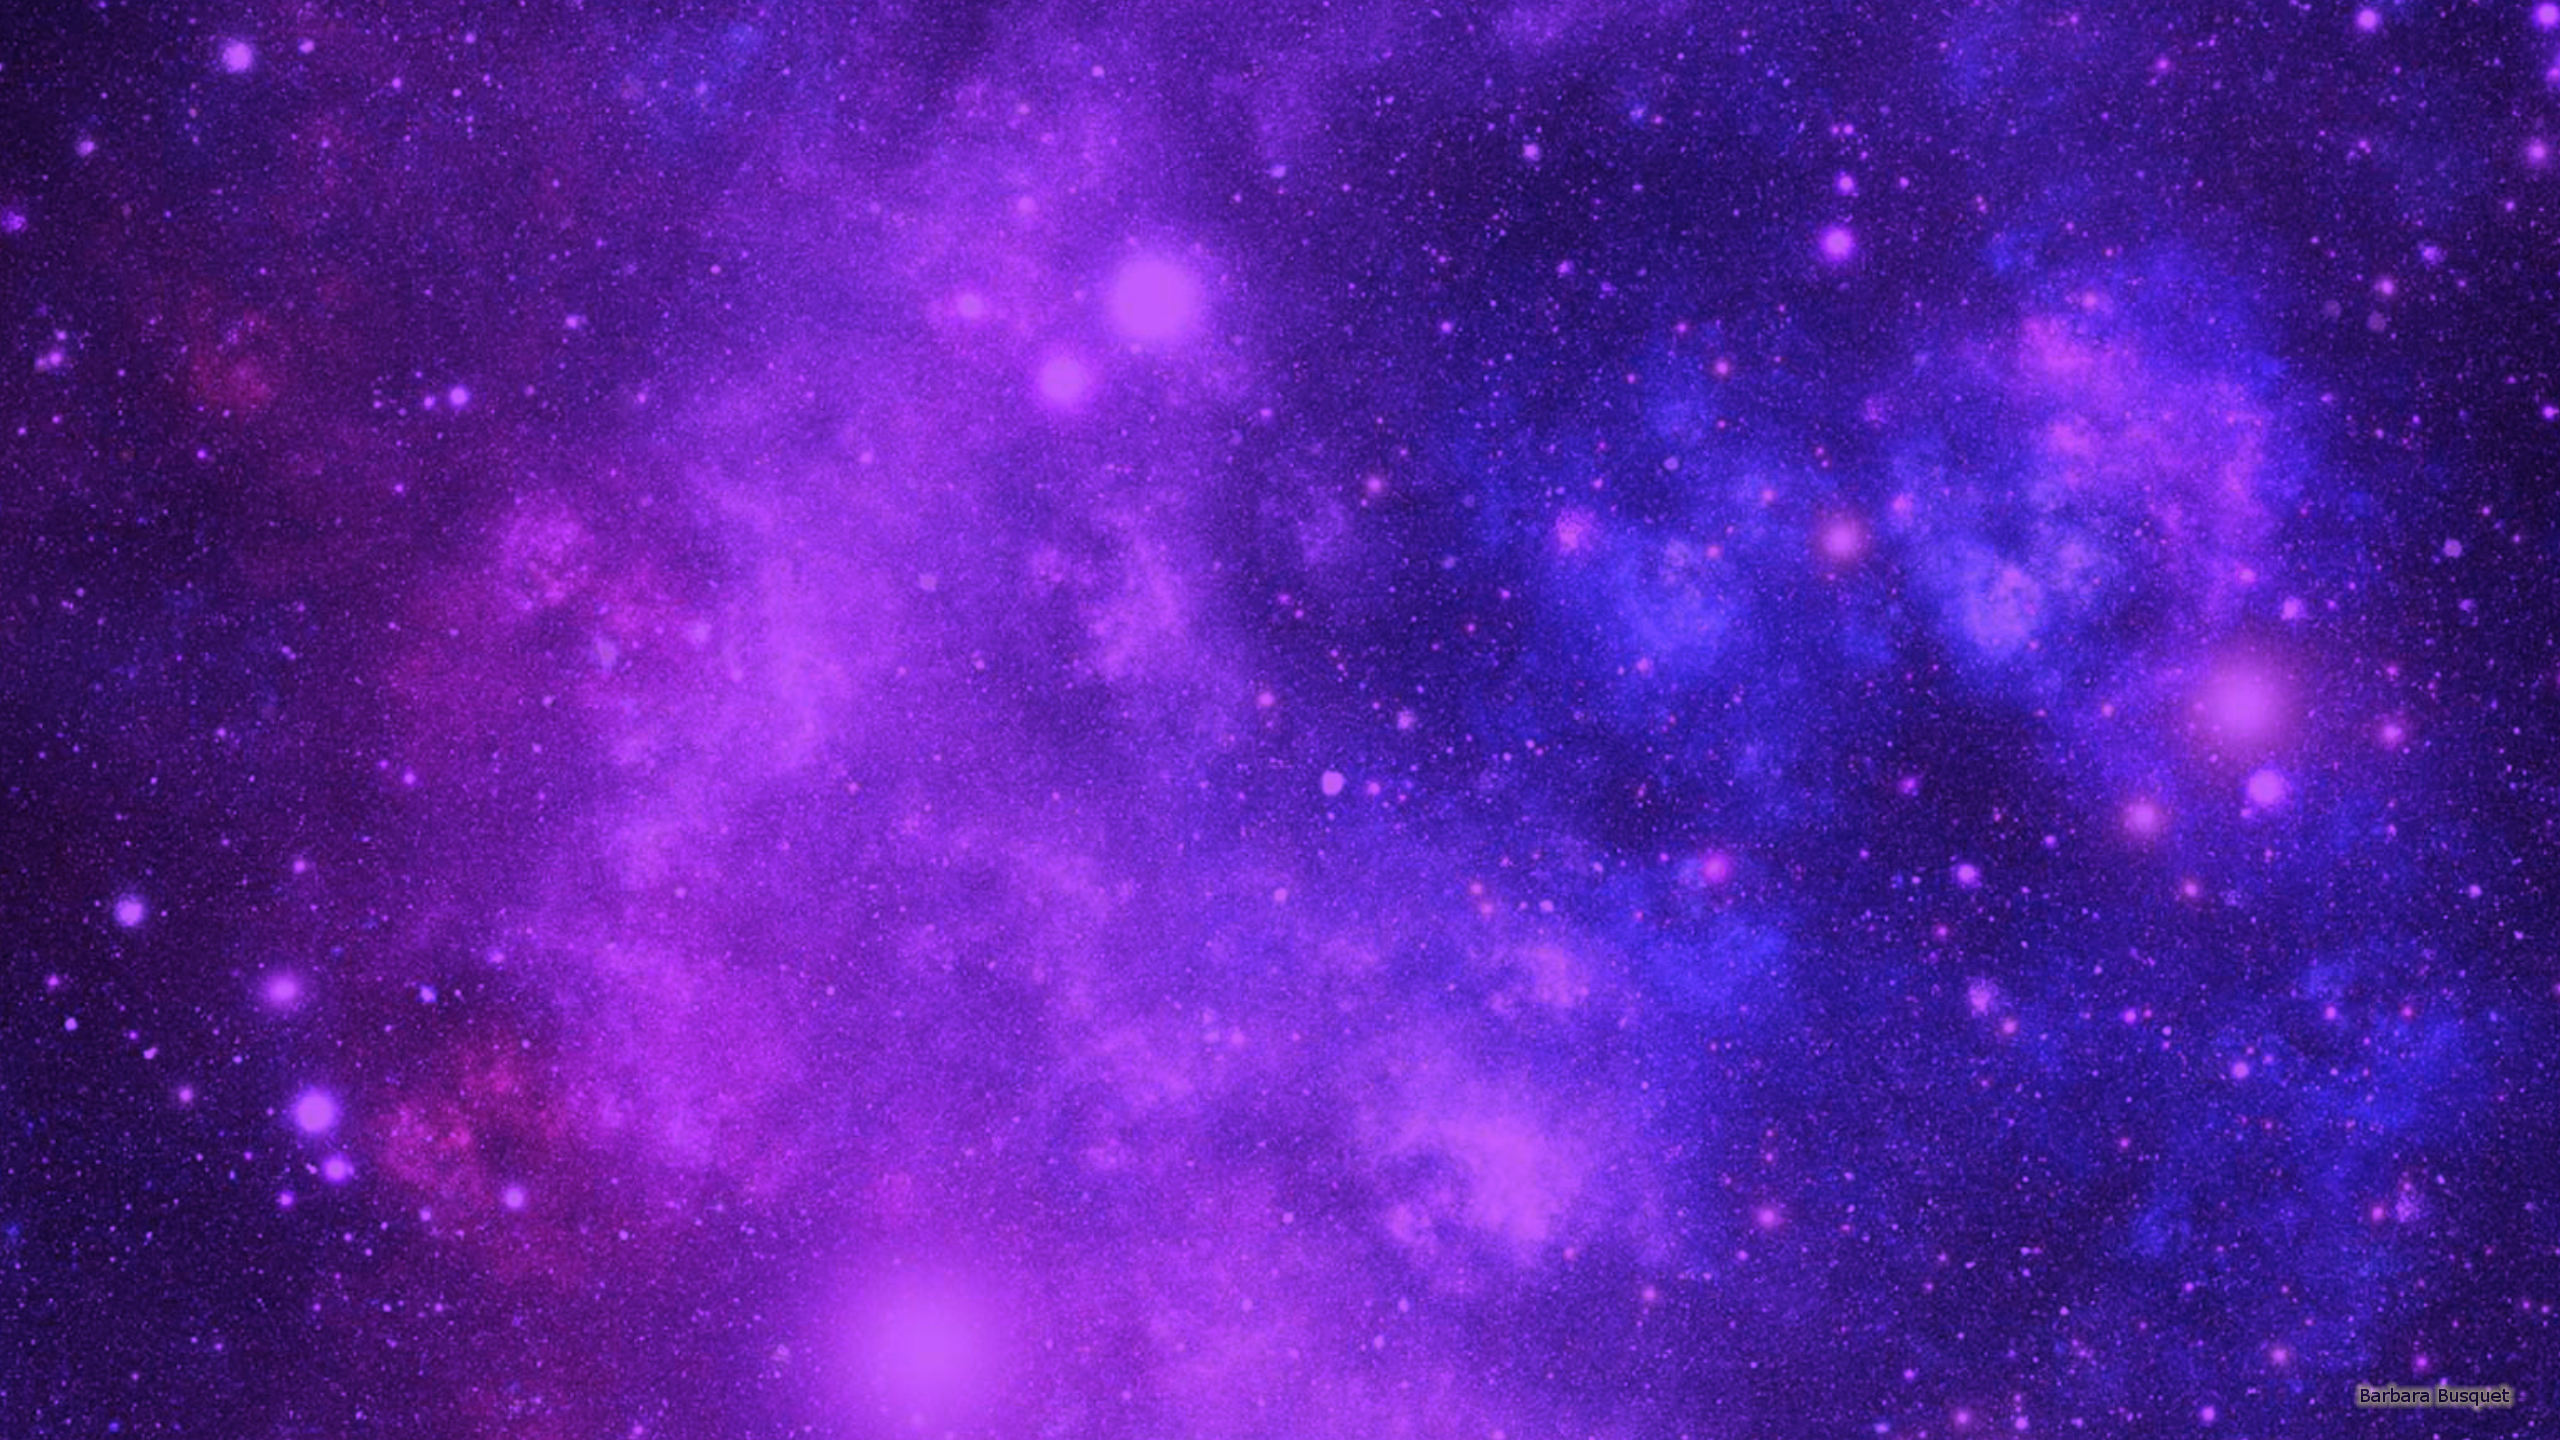 Blue Galaxy Wallpaper - WallpaperSafari